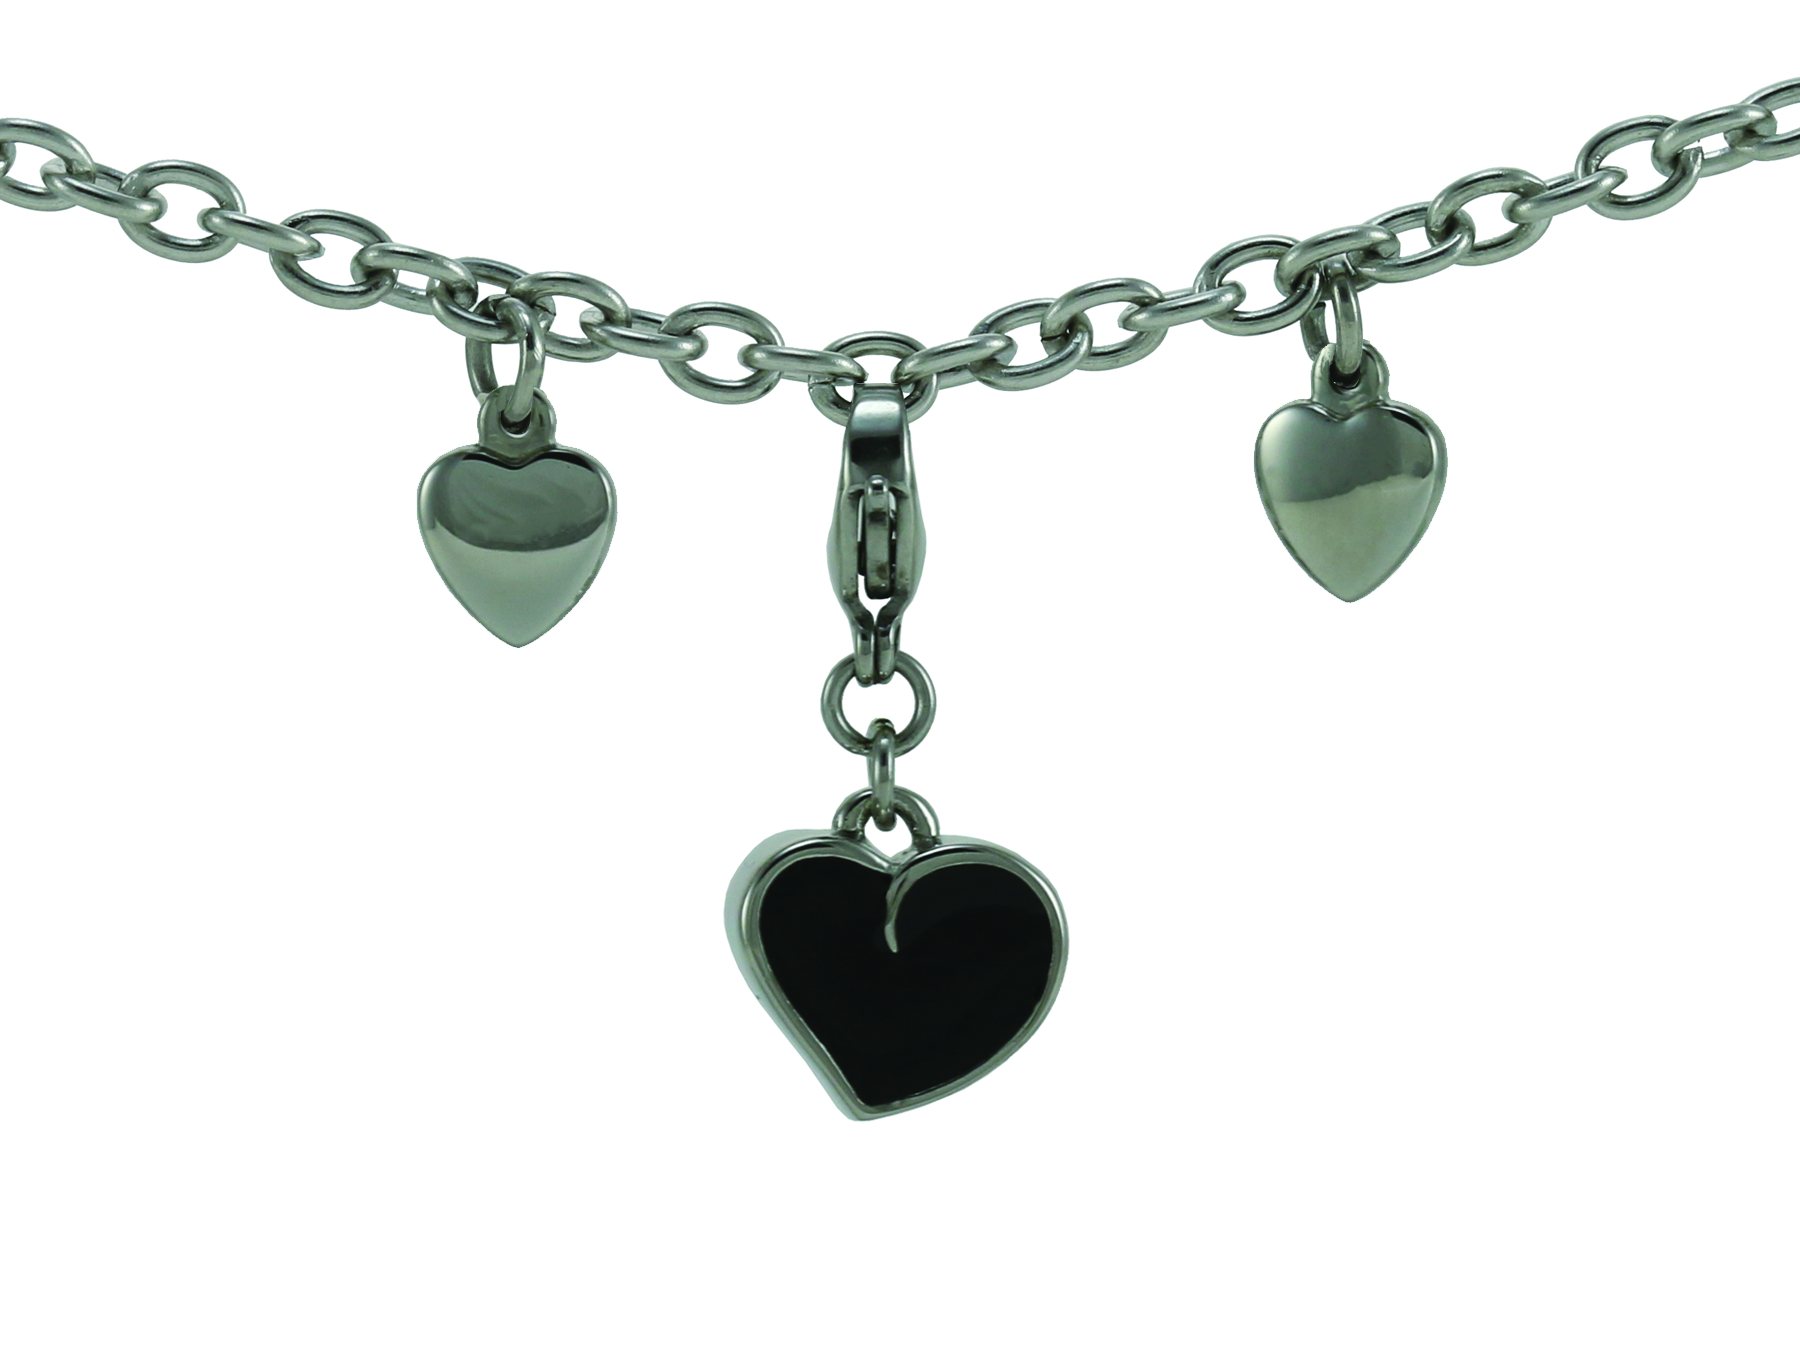 Charm Bracelet with Heart Charm Image